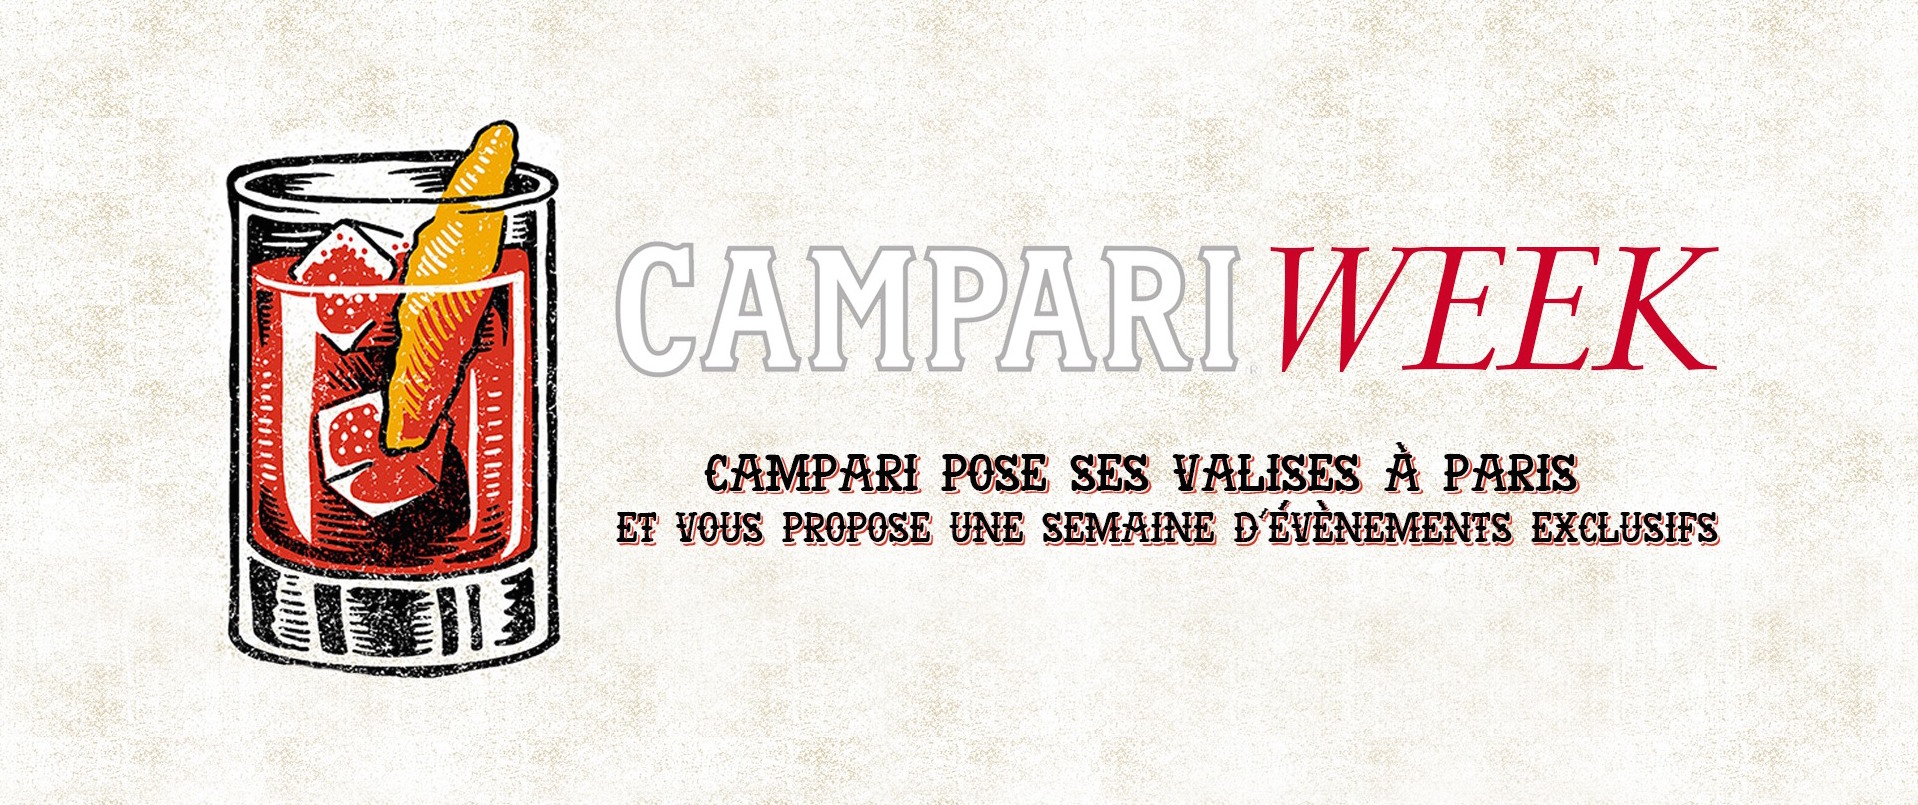 Campari Week à Paris